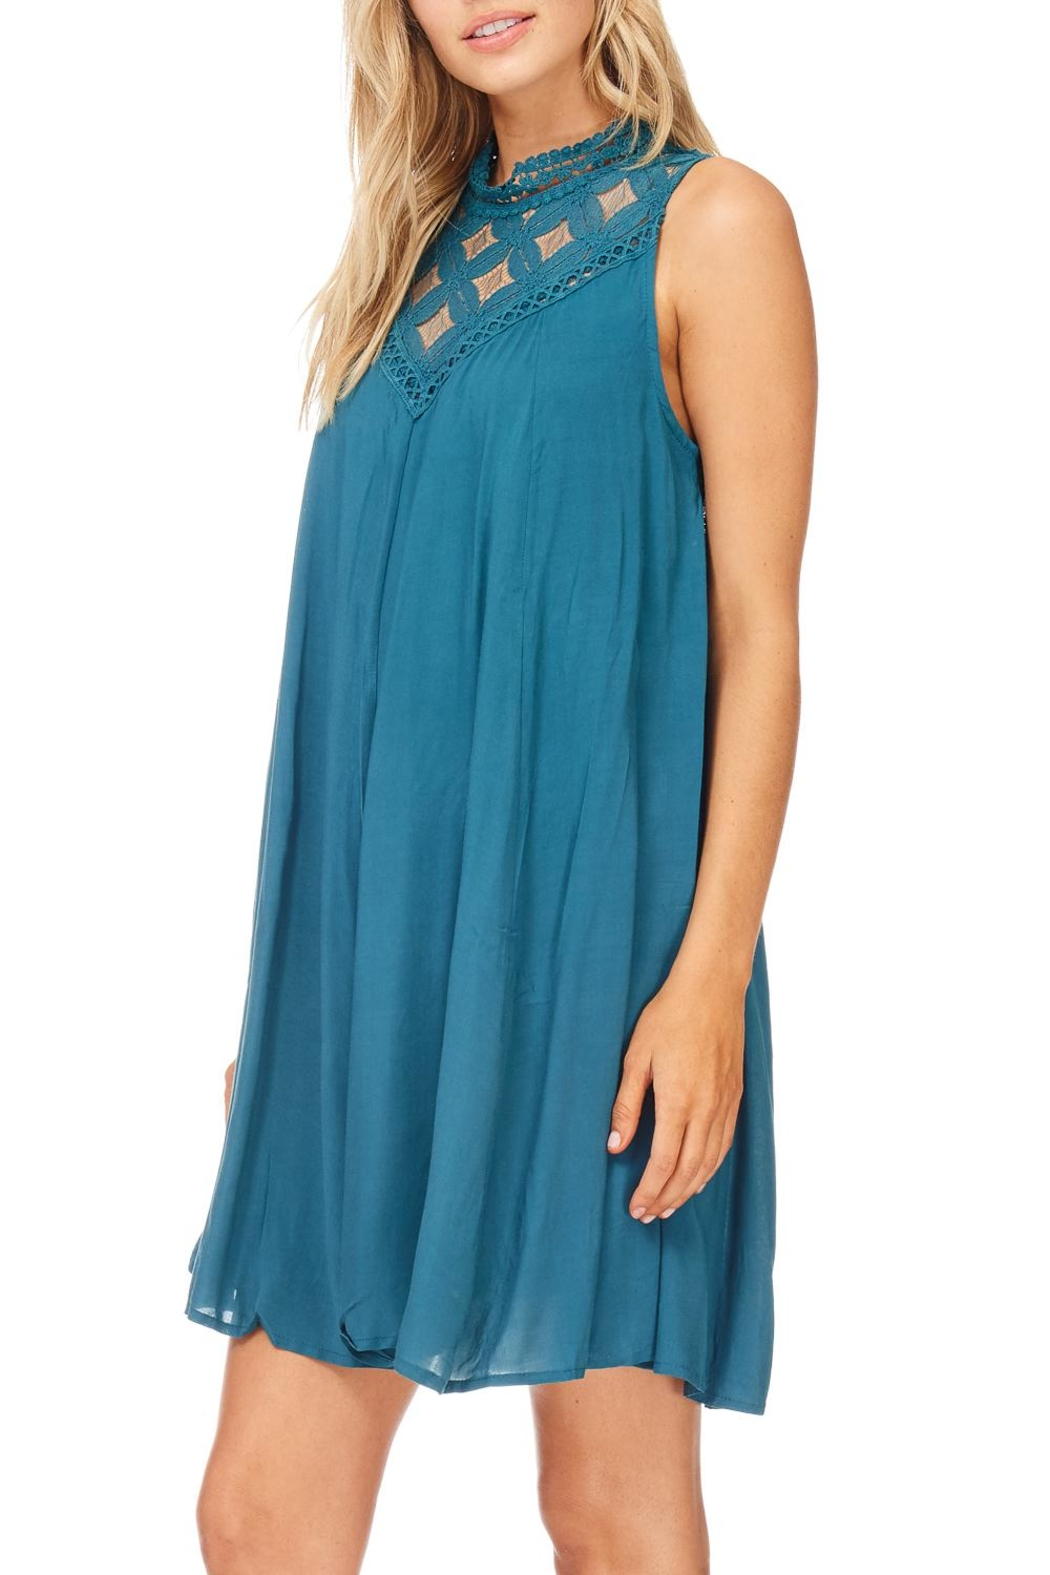 She + Sky Teal Lace Dress - Side Cropped Image